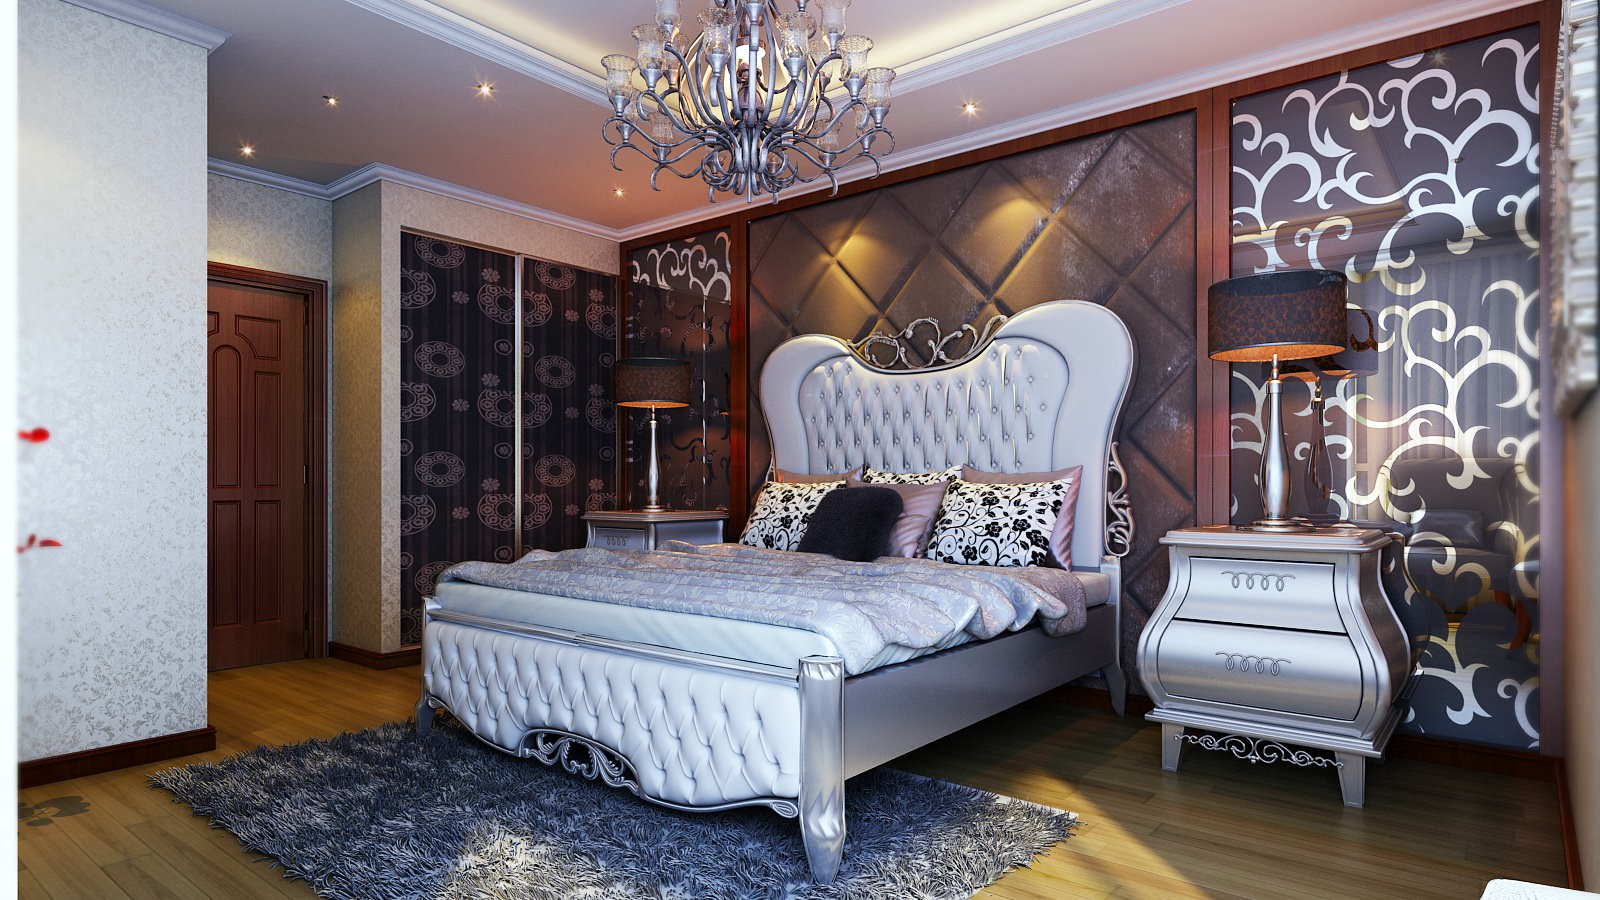 Luxurious bed room 3d model max for Room 3d model